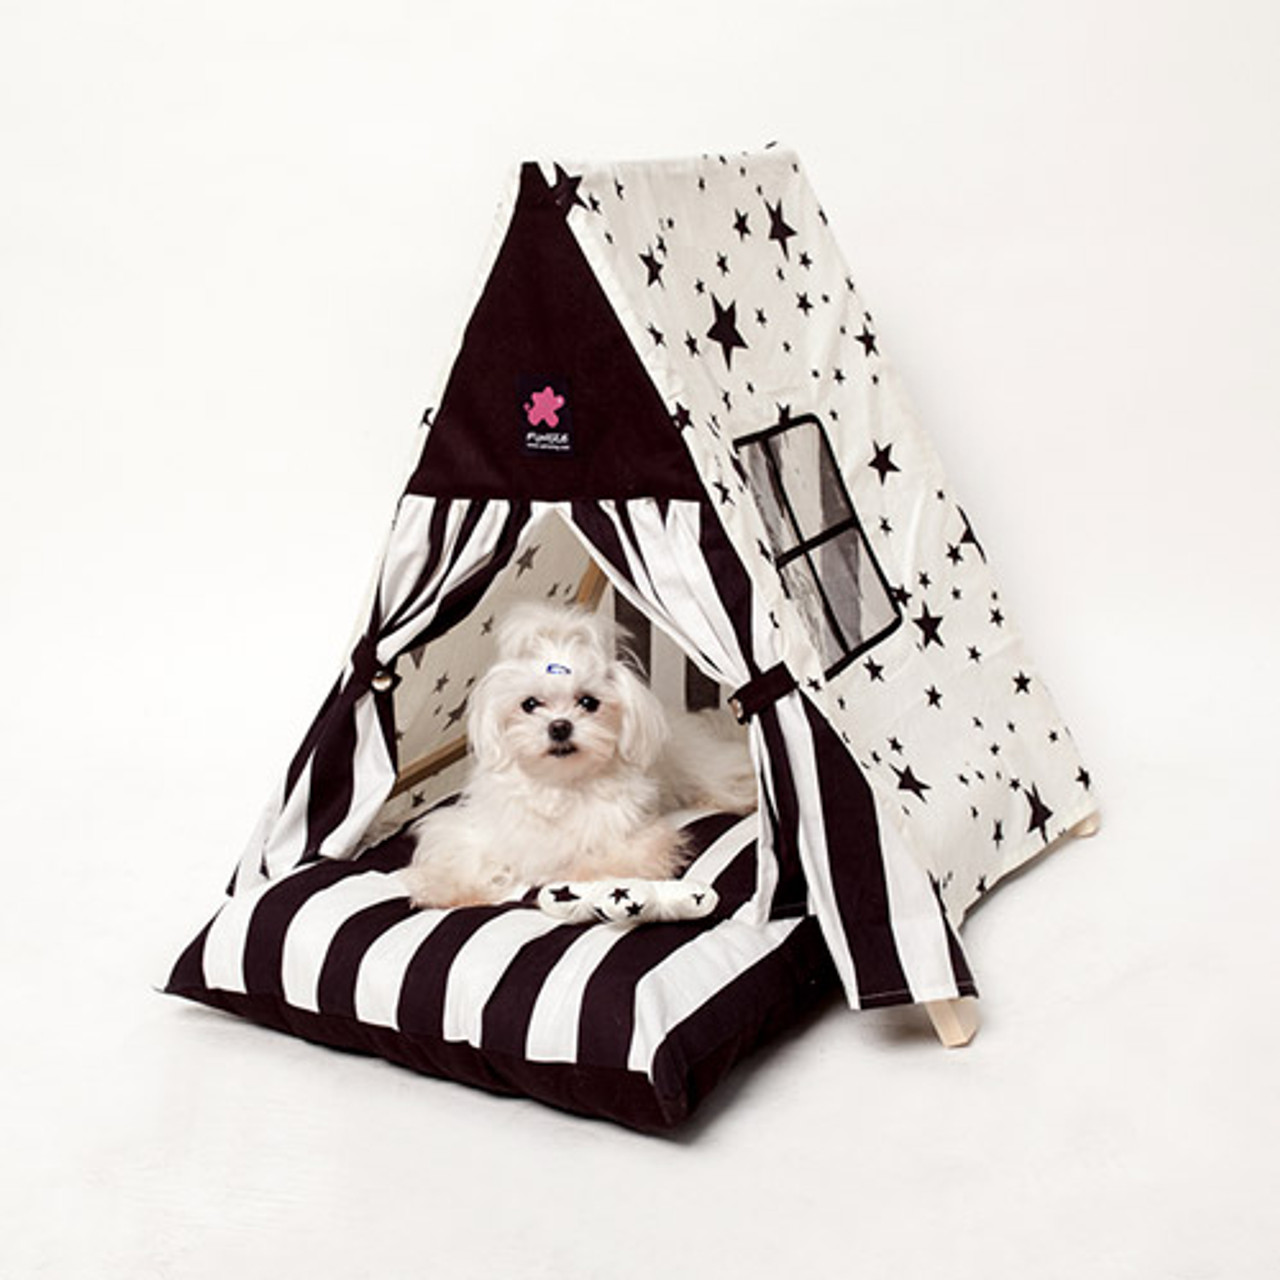 Fundle White Night Tent Bed